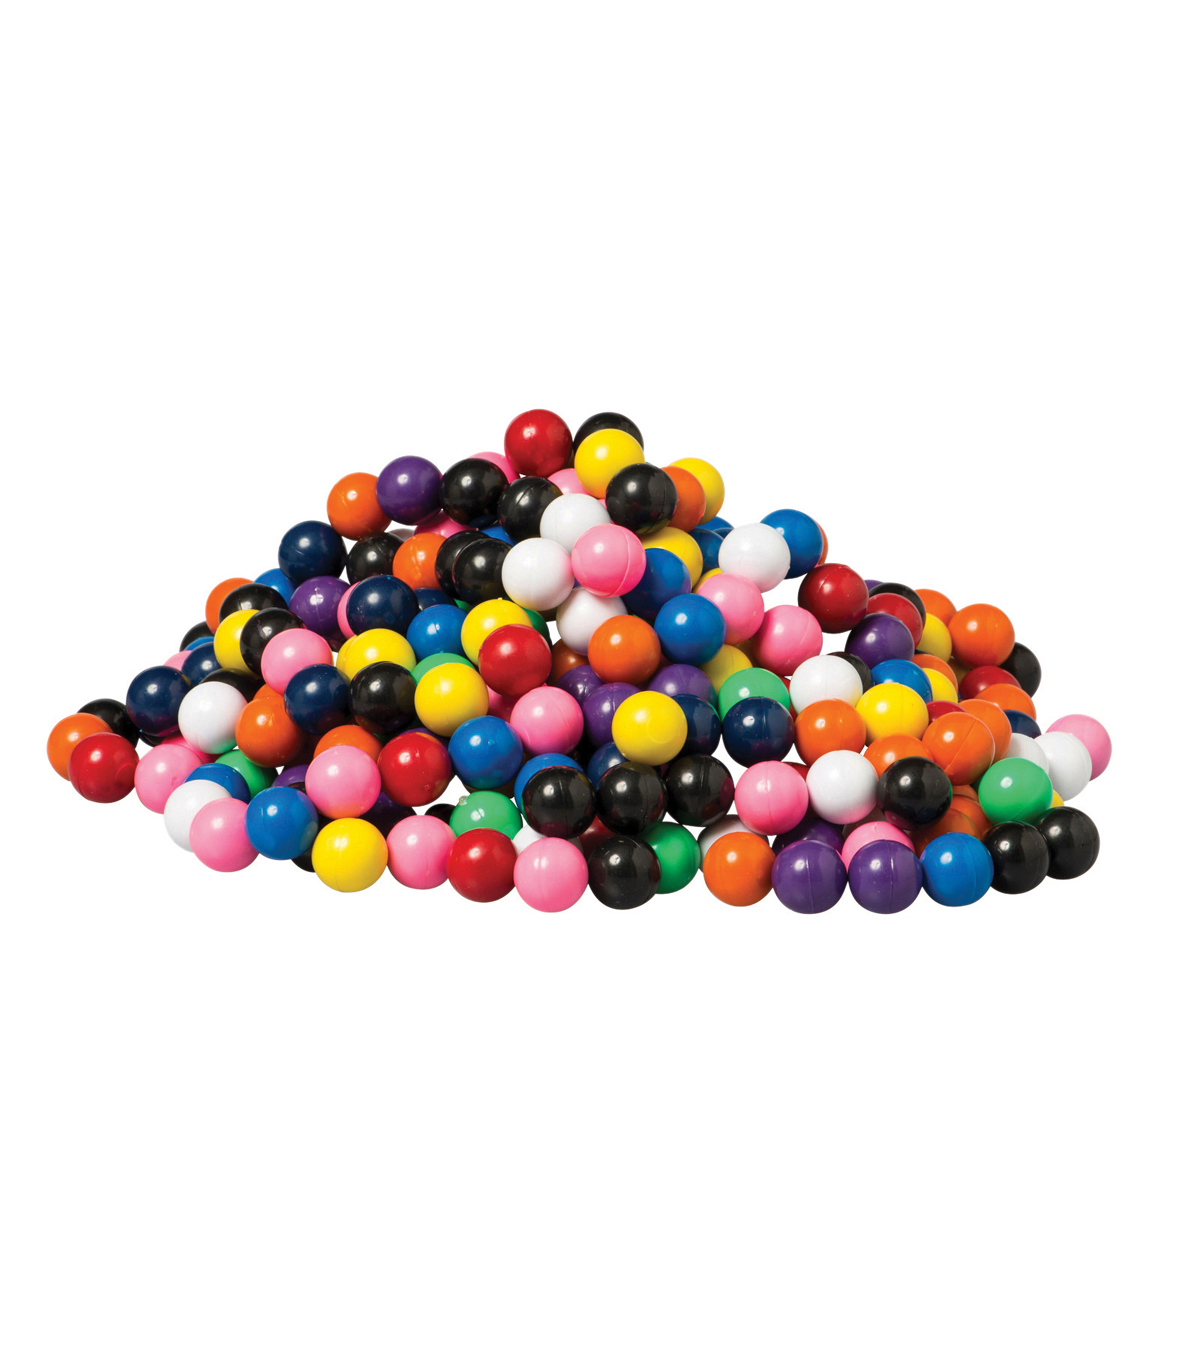 Solid-Colored Magnet Marbles (100 Count)